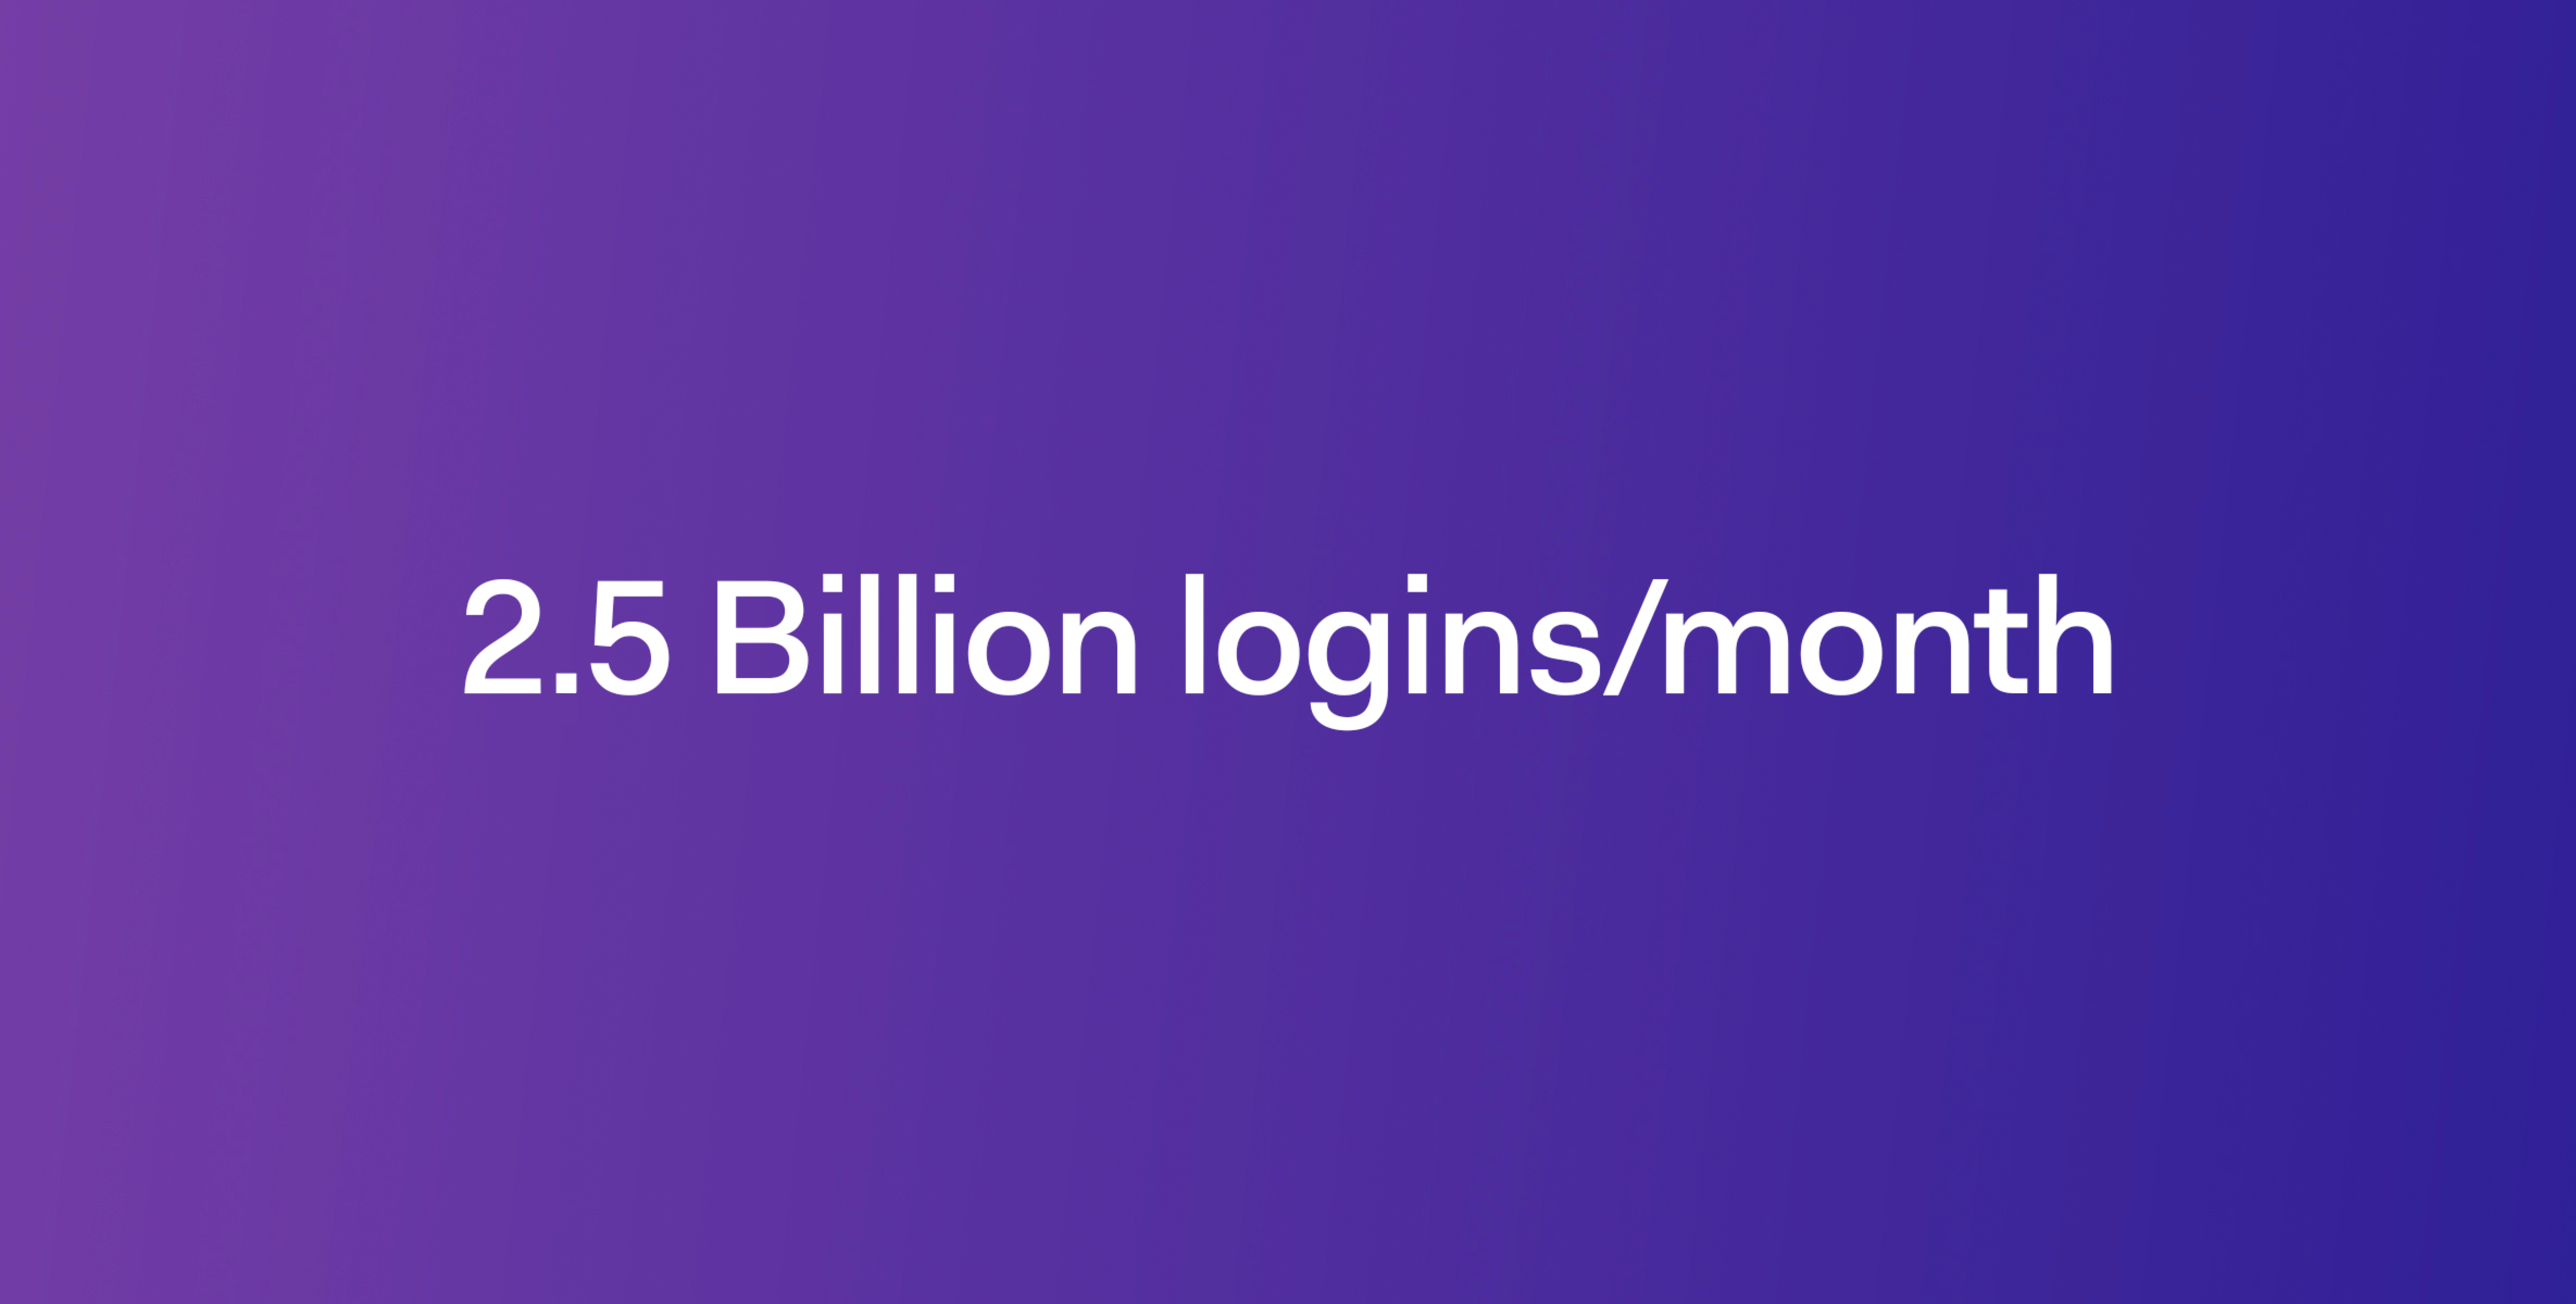 Auth0 is currently handling 2.5 billion logins per month.